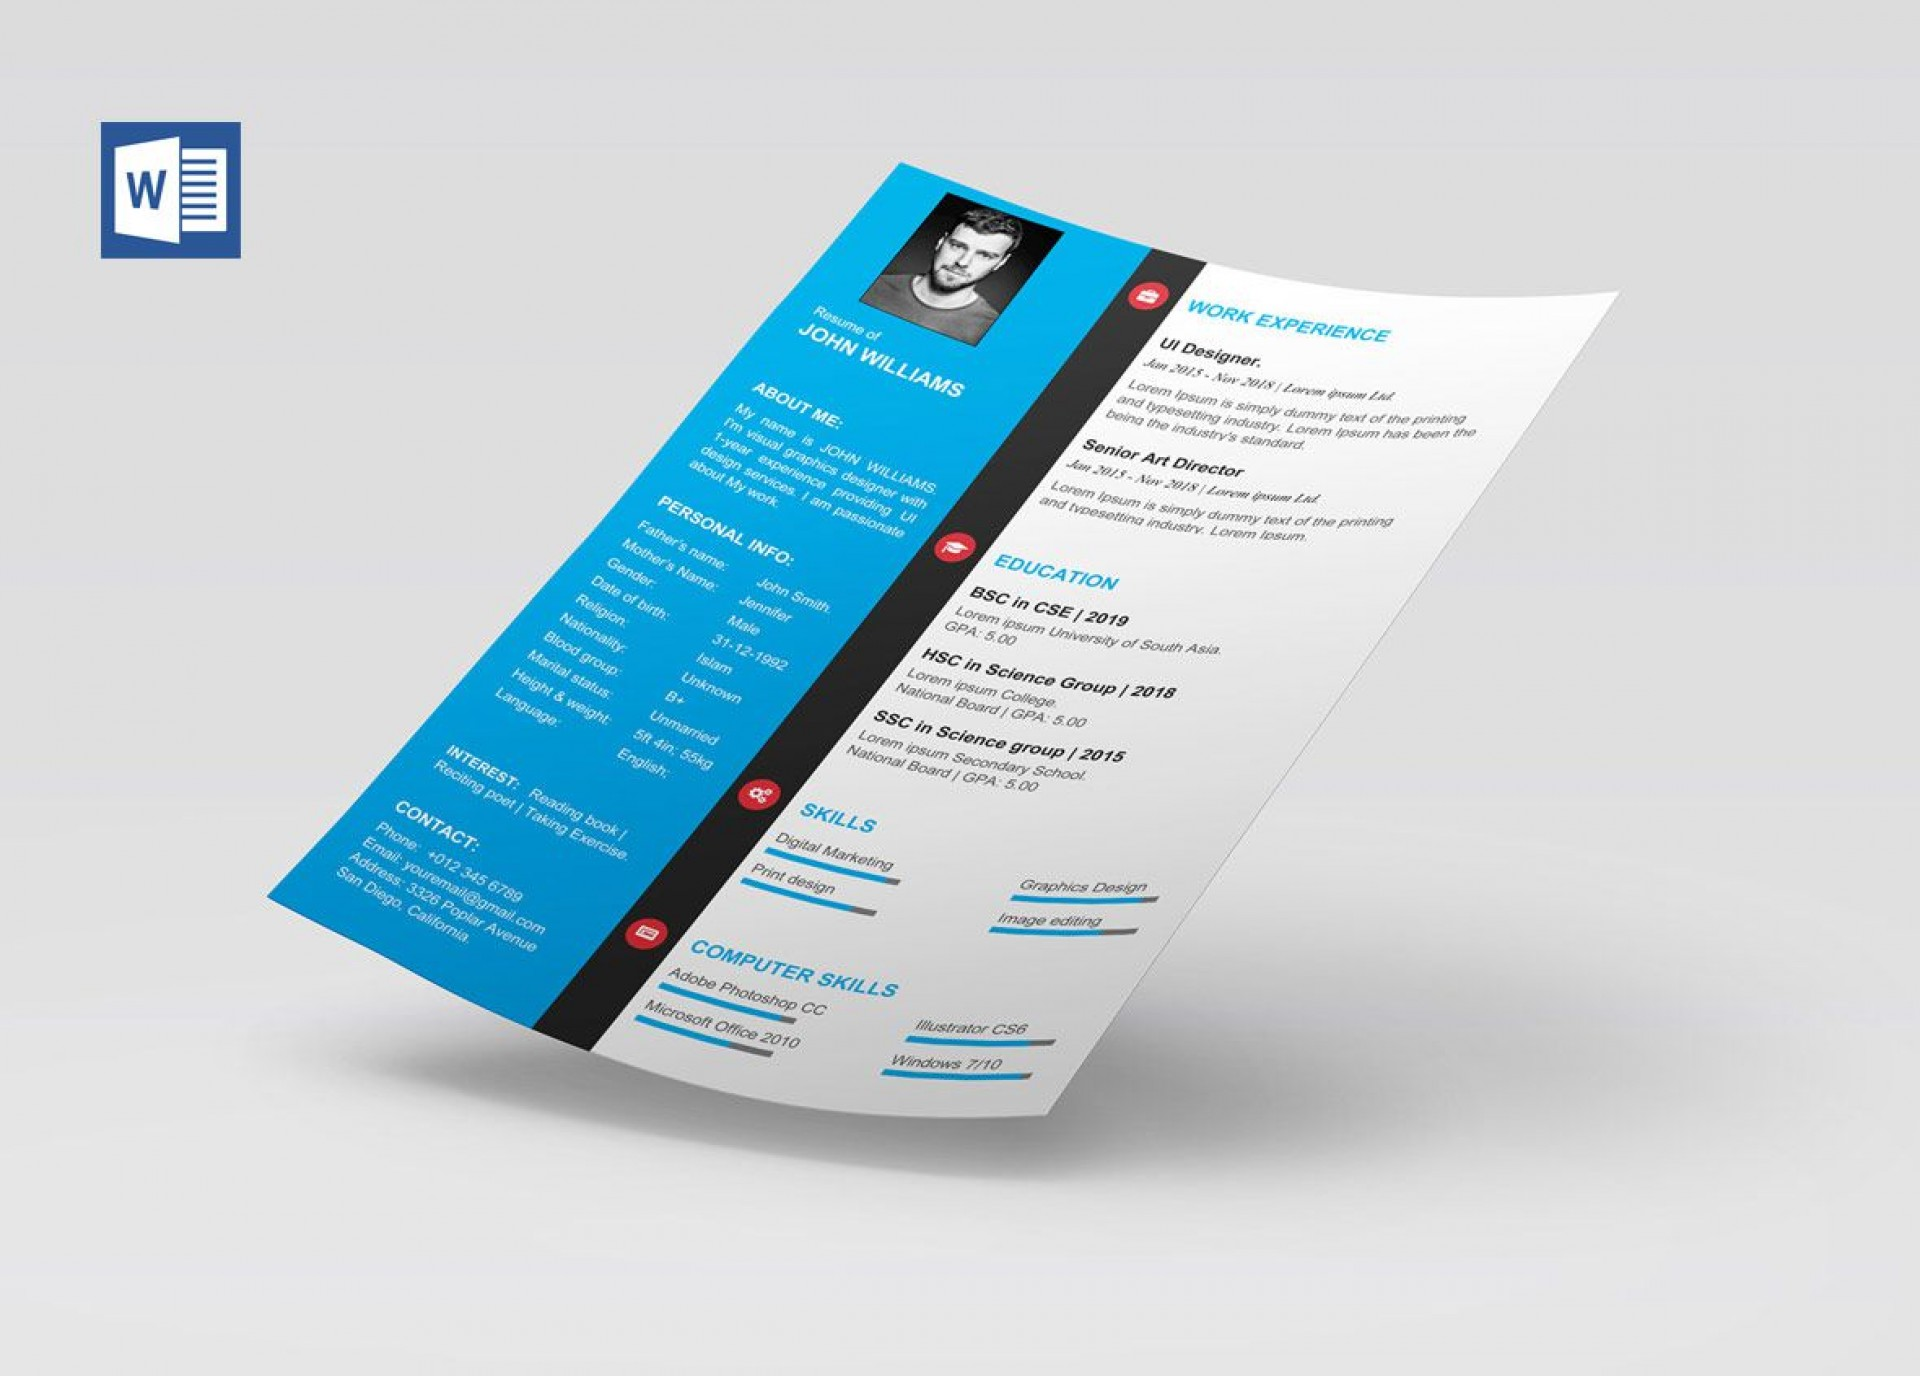 011 Formidable Word Template Free Download Image  Downloads Layout Microsoft 2007 Simple Cv 20191920